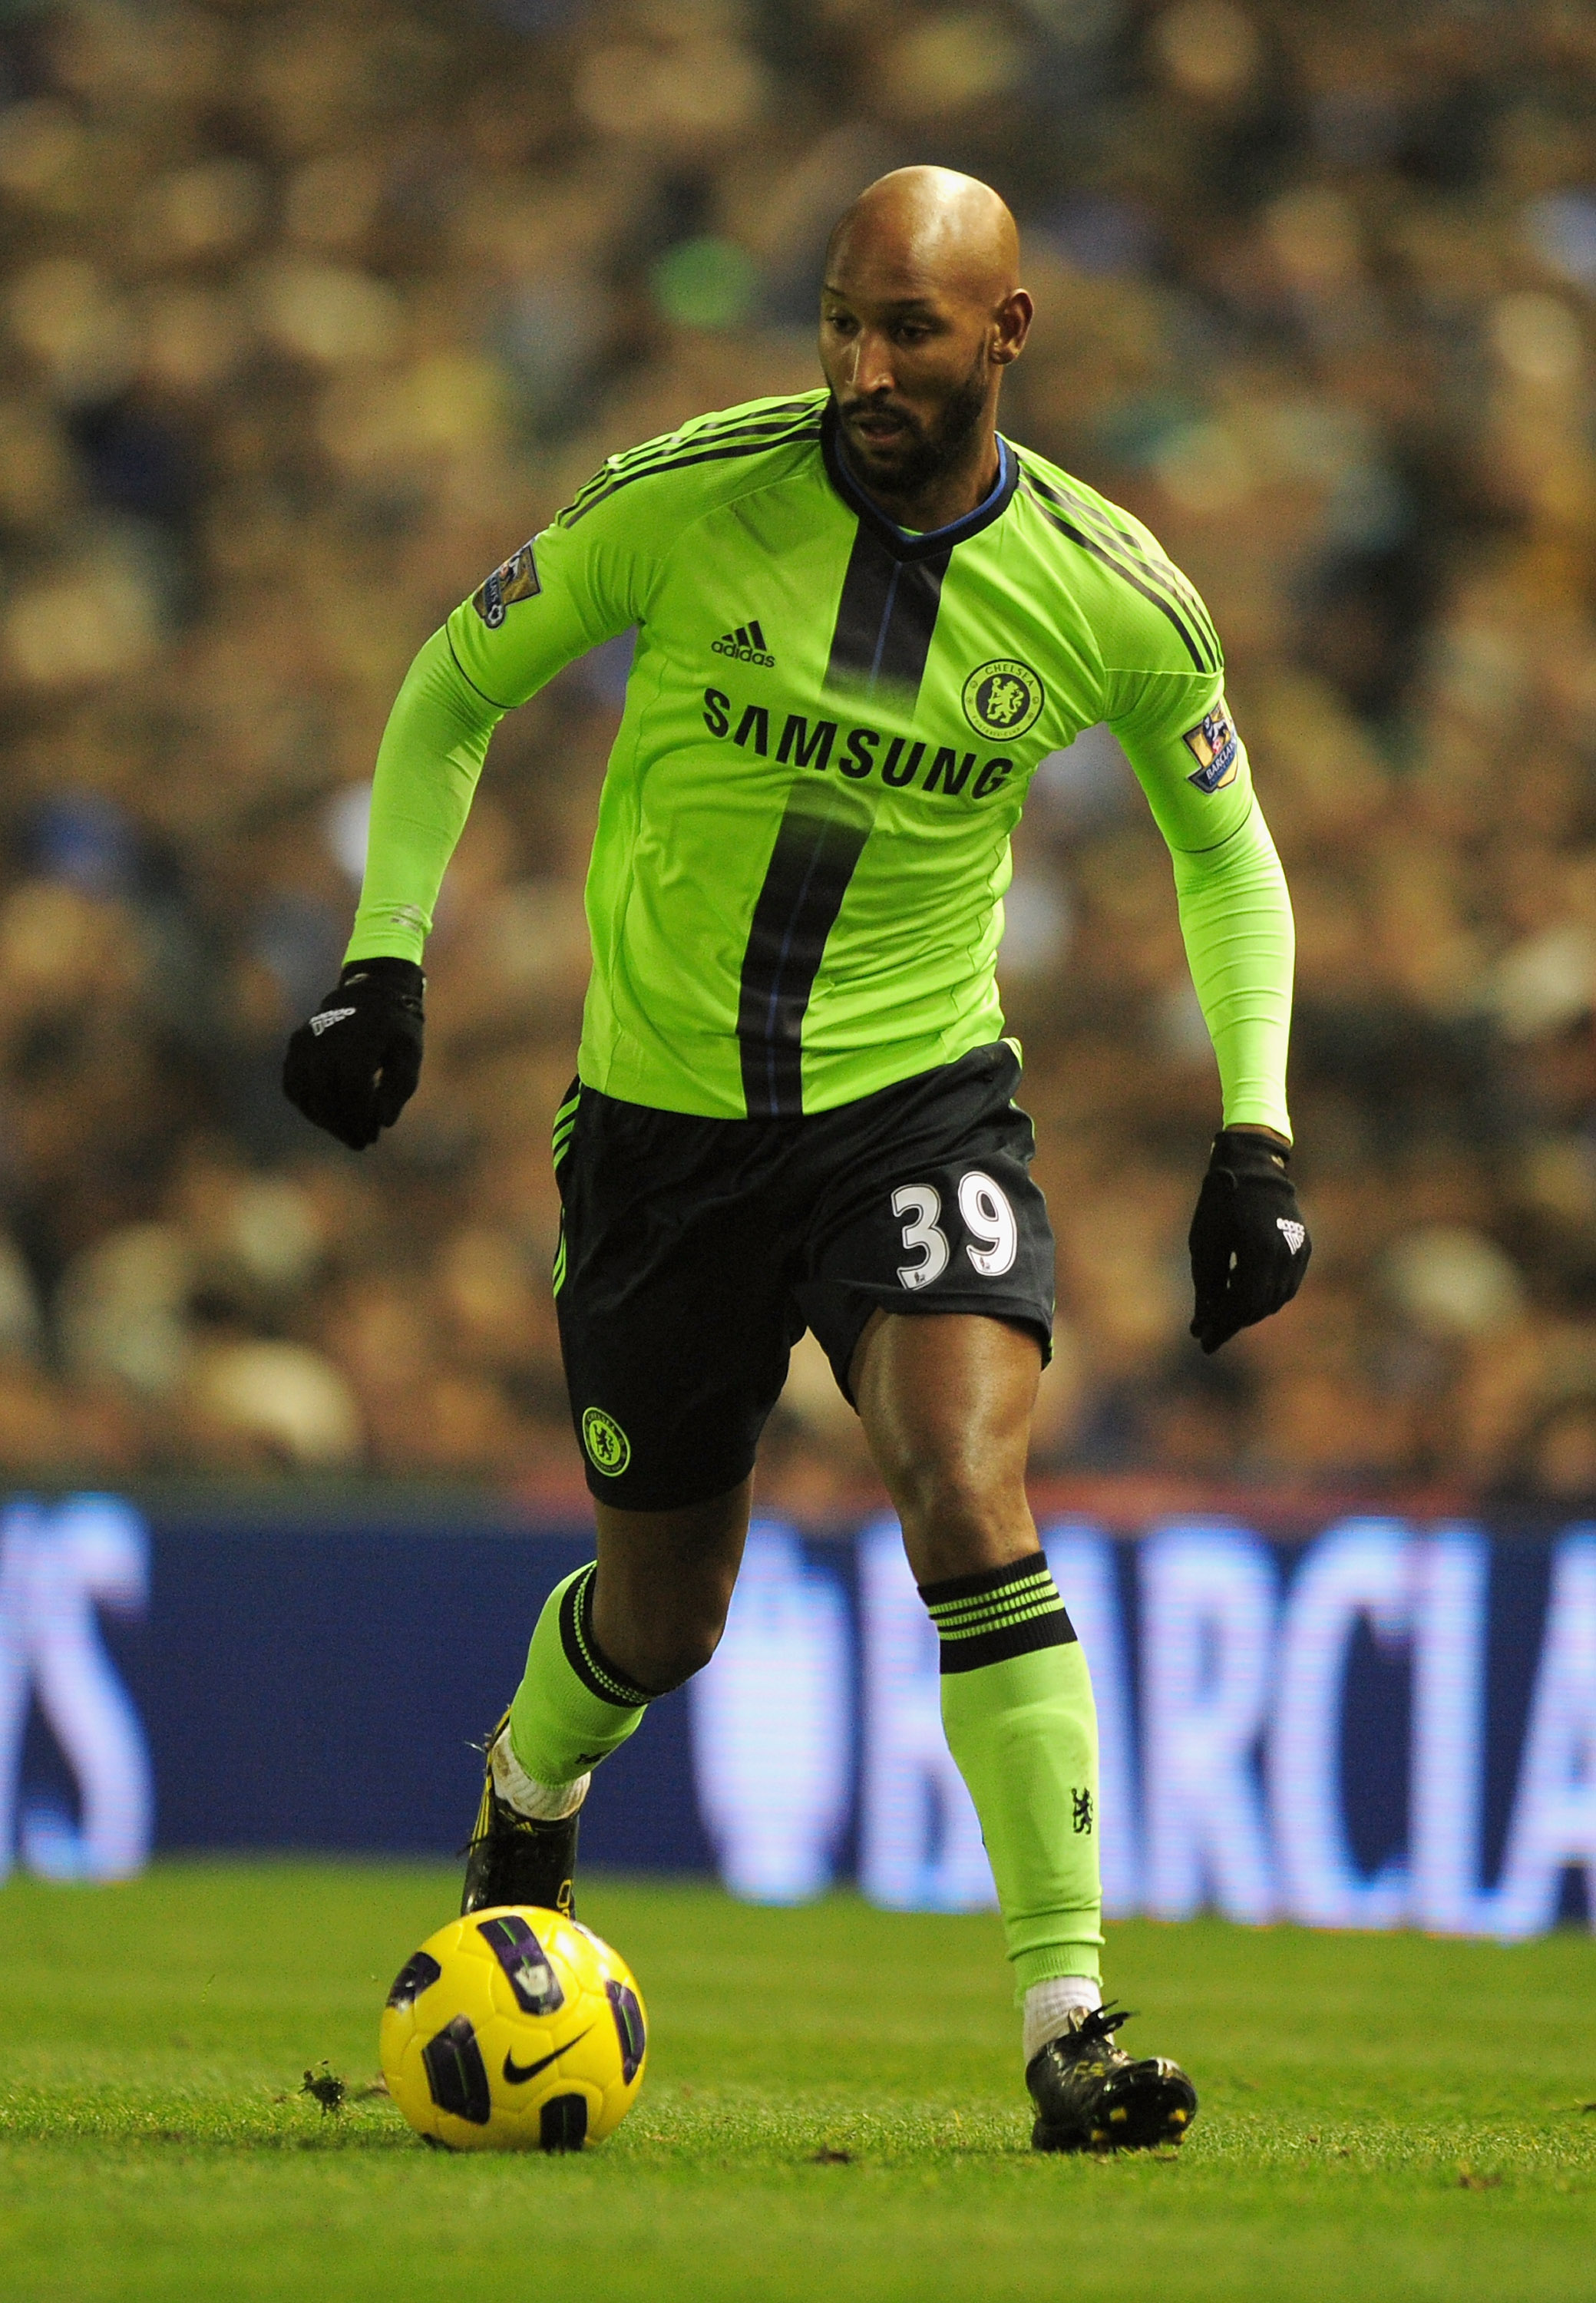 BIRMINGHAM, ENGLAND - NOVEMBER 20:  Nicolas Anelka of Chelsea runs with the ball during the Barclays Premier League match between Birmingham City and Chelsea at St Andrews on November 20, 2010 in Birmingham, England.  (Photo by Shaun Botterill/Getty Image